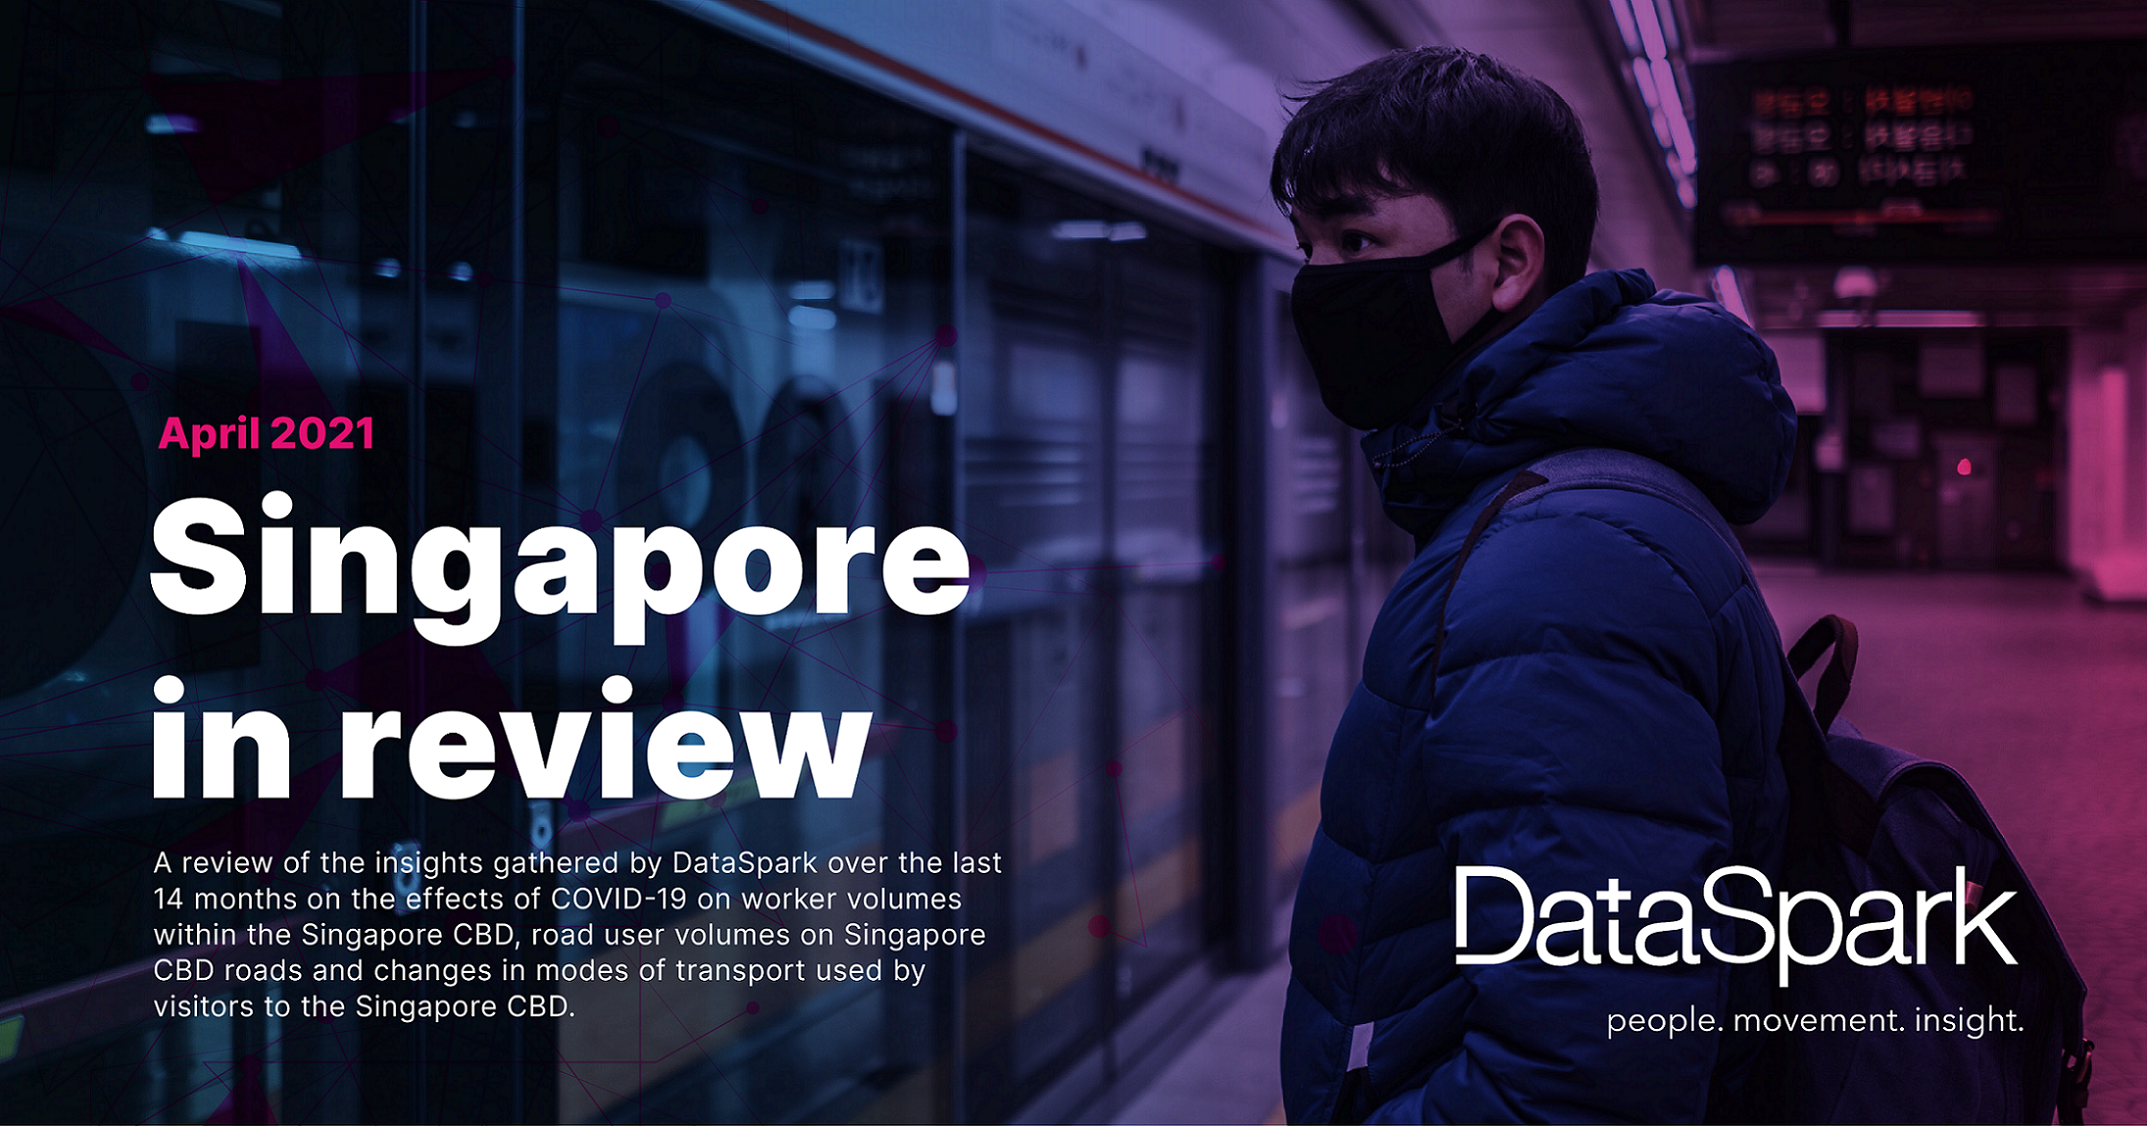 Singapore in review report thumbnail